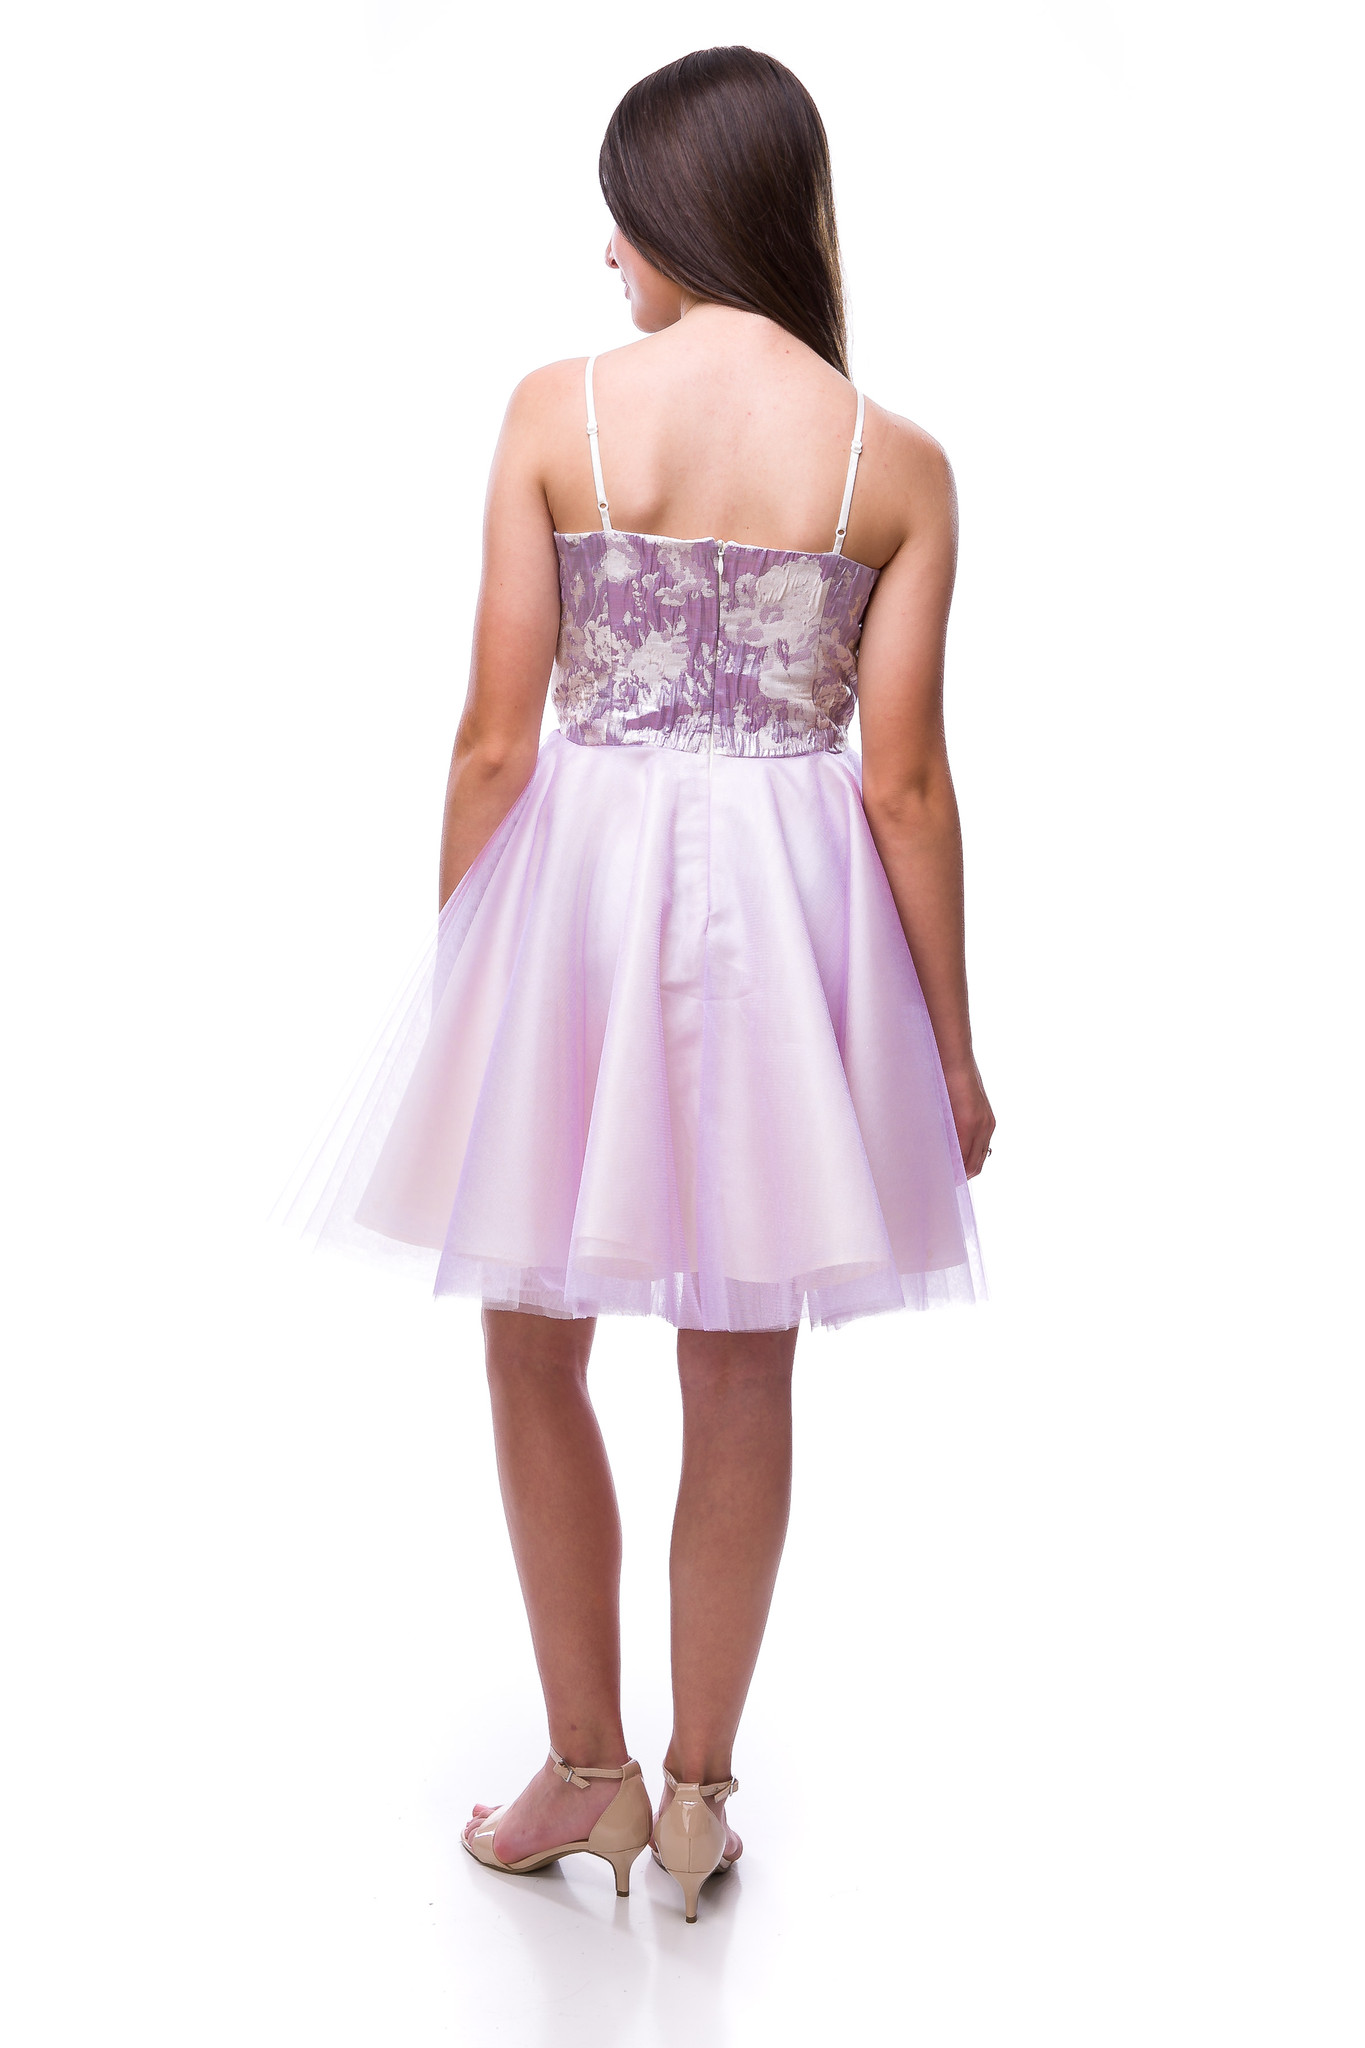 Tween Girls Lilac Tulle Party Dress in Longer Length back view.